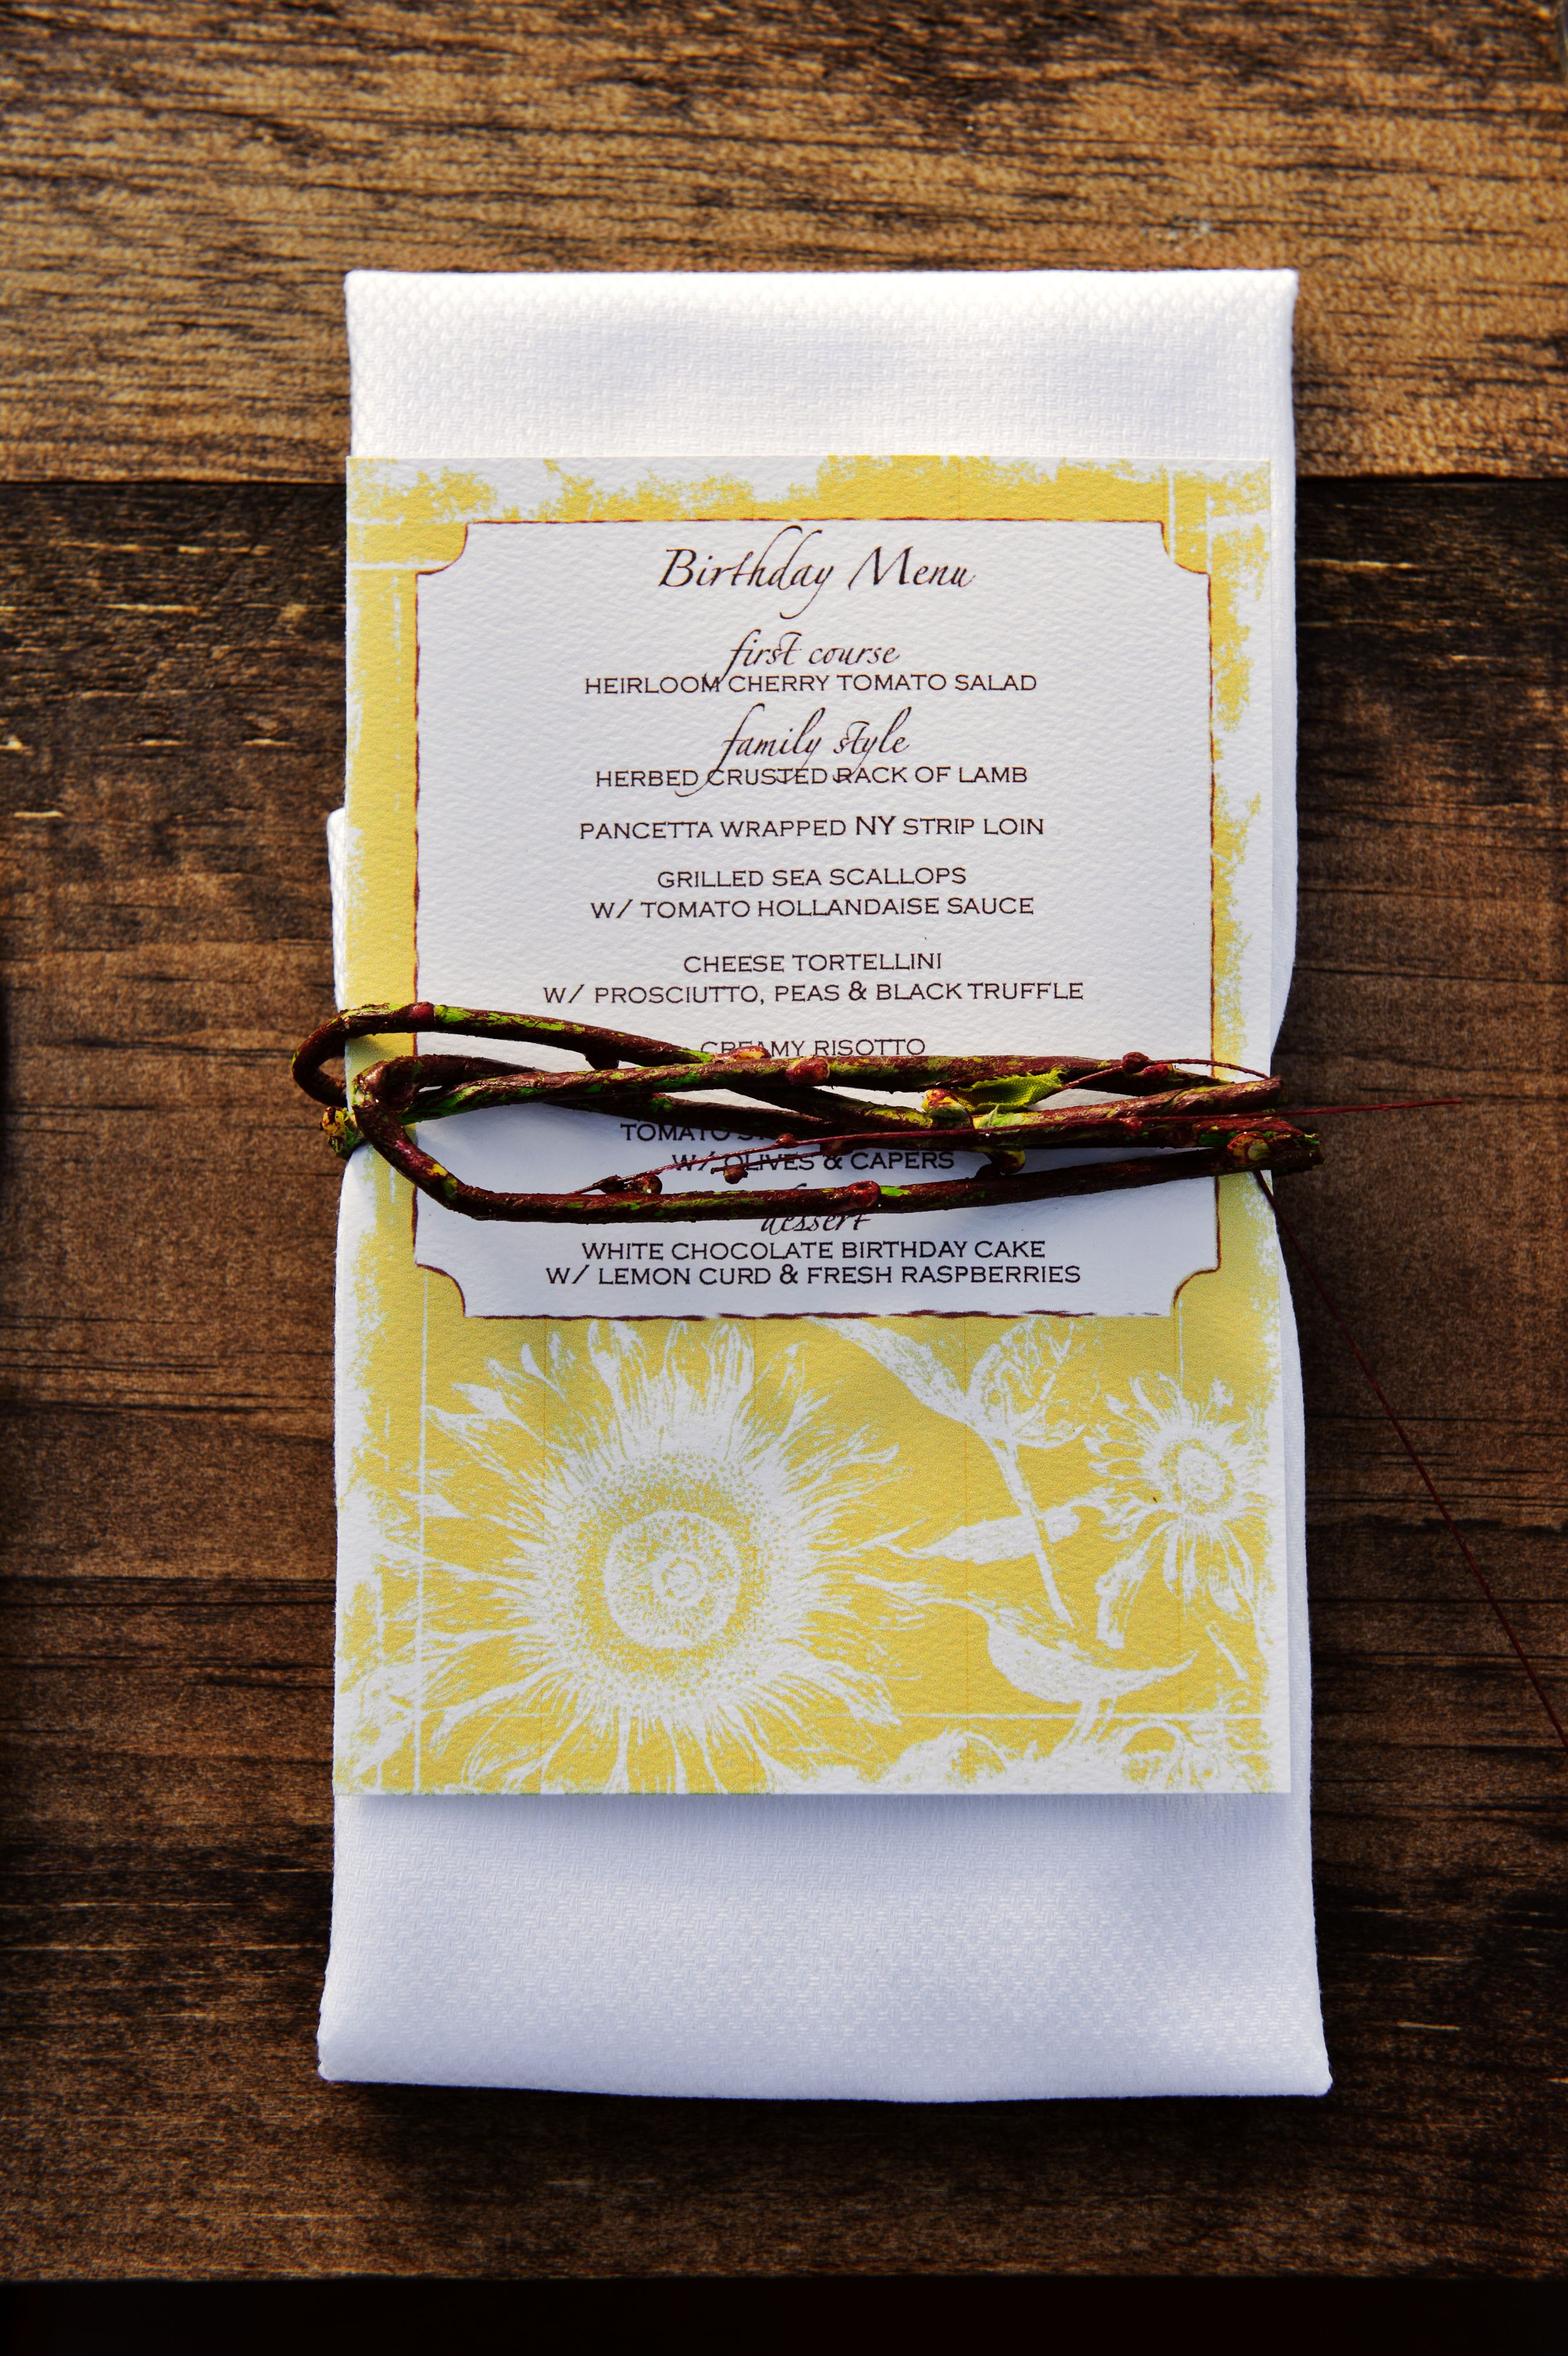 Birthday Menu Design and Planning by Simply Beautiful Events